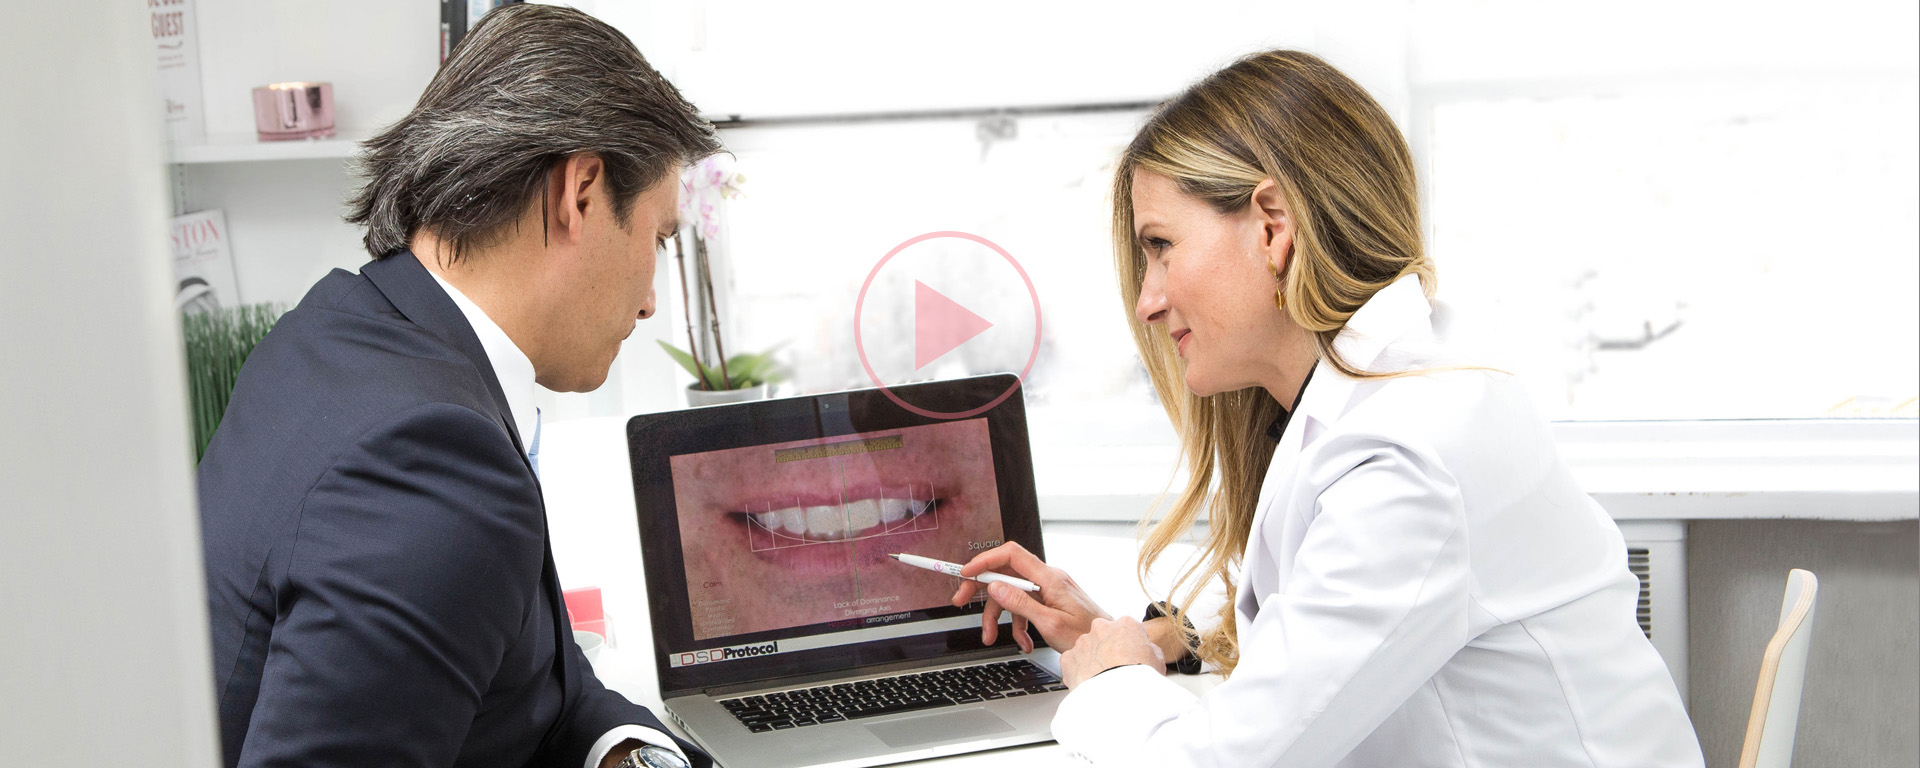 Dr Maria Cardenas with her patient at a laptop talking to him about his smile design with DSD dental treatment.